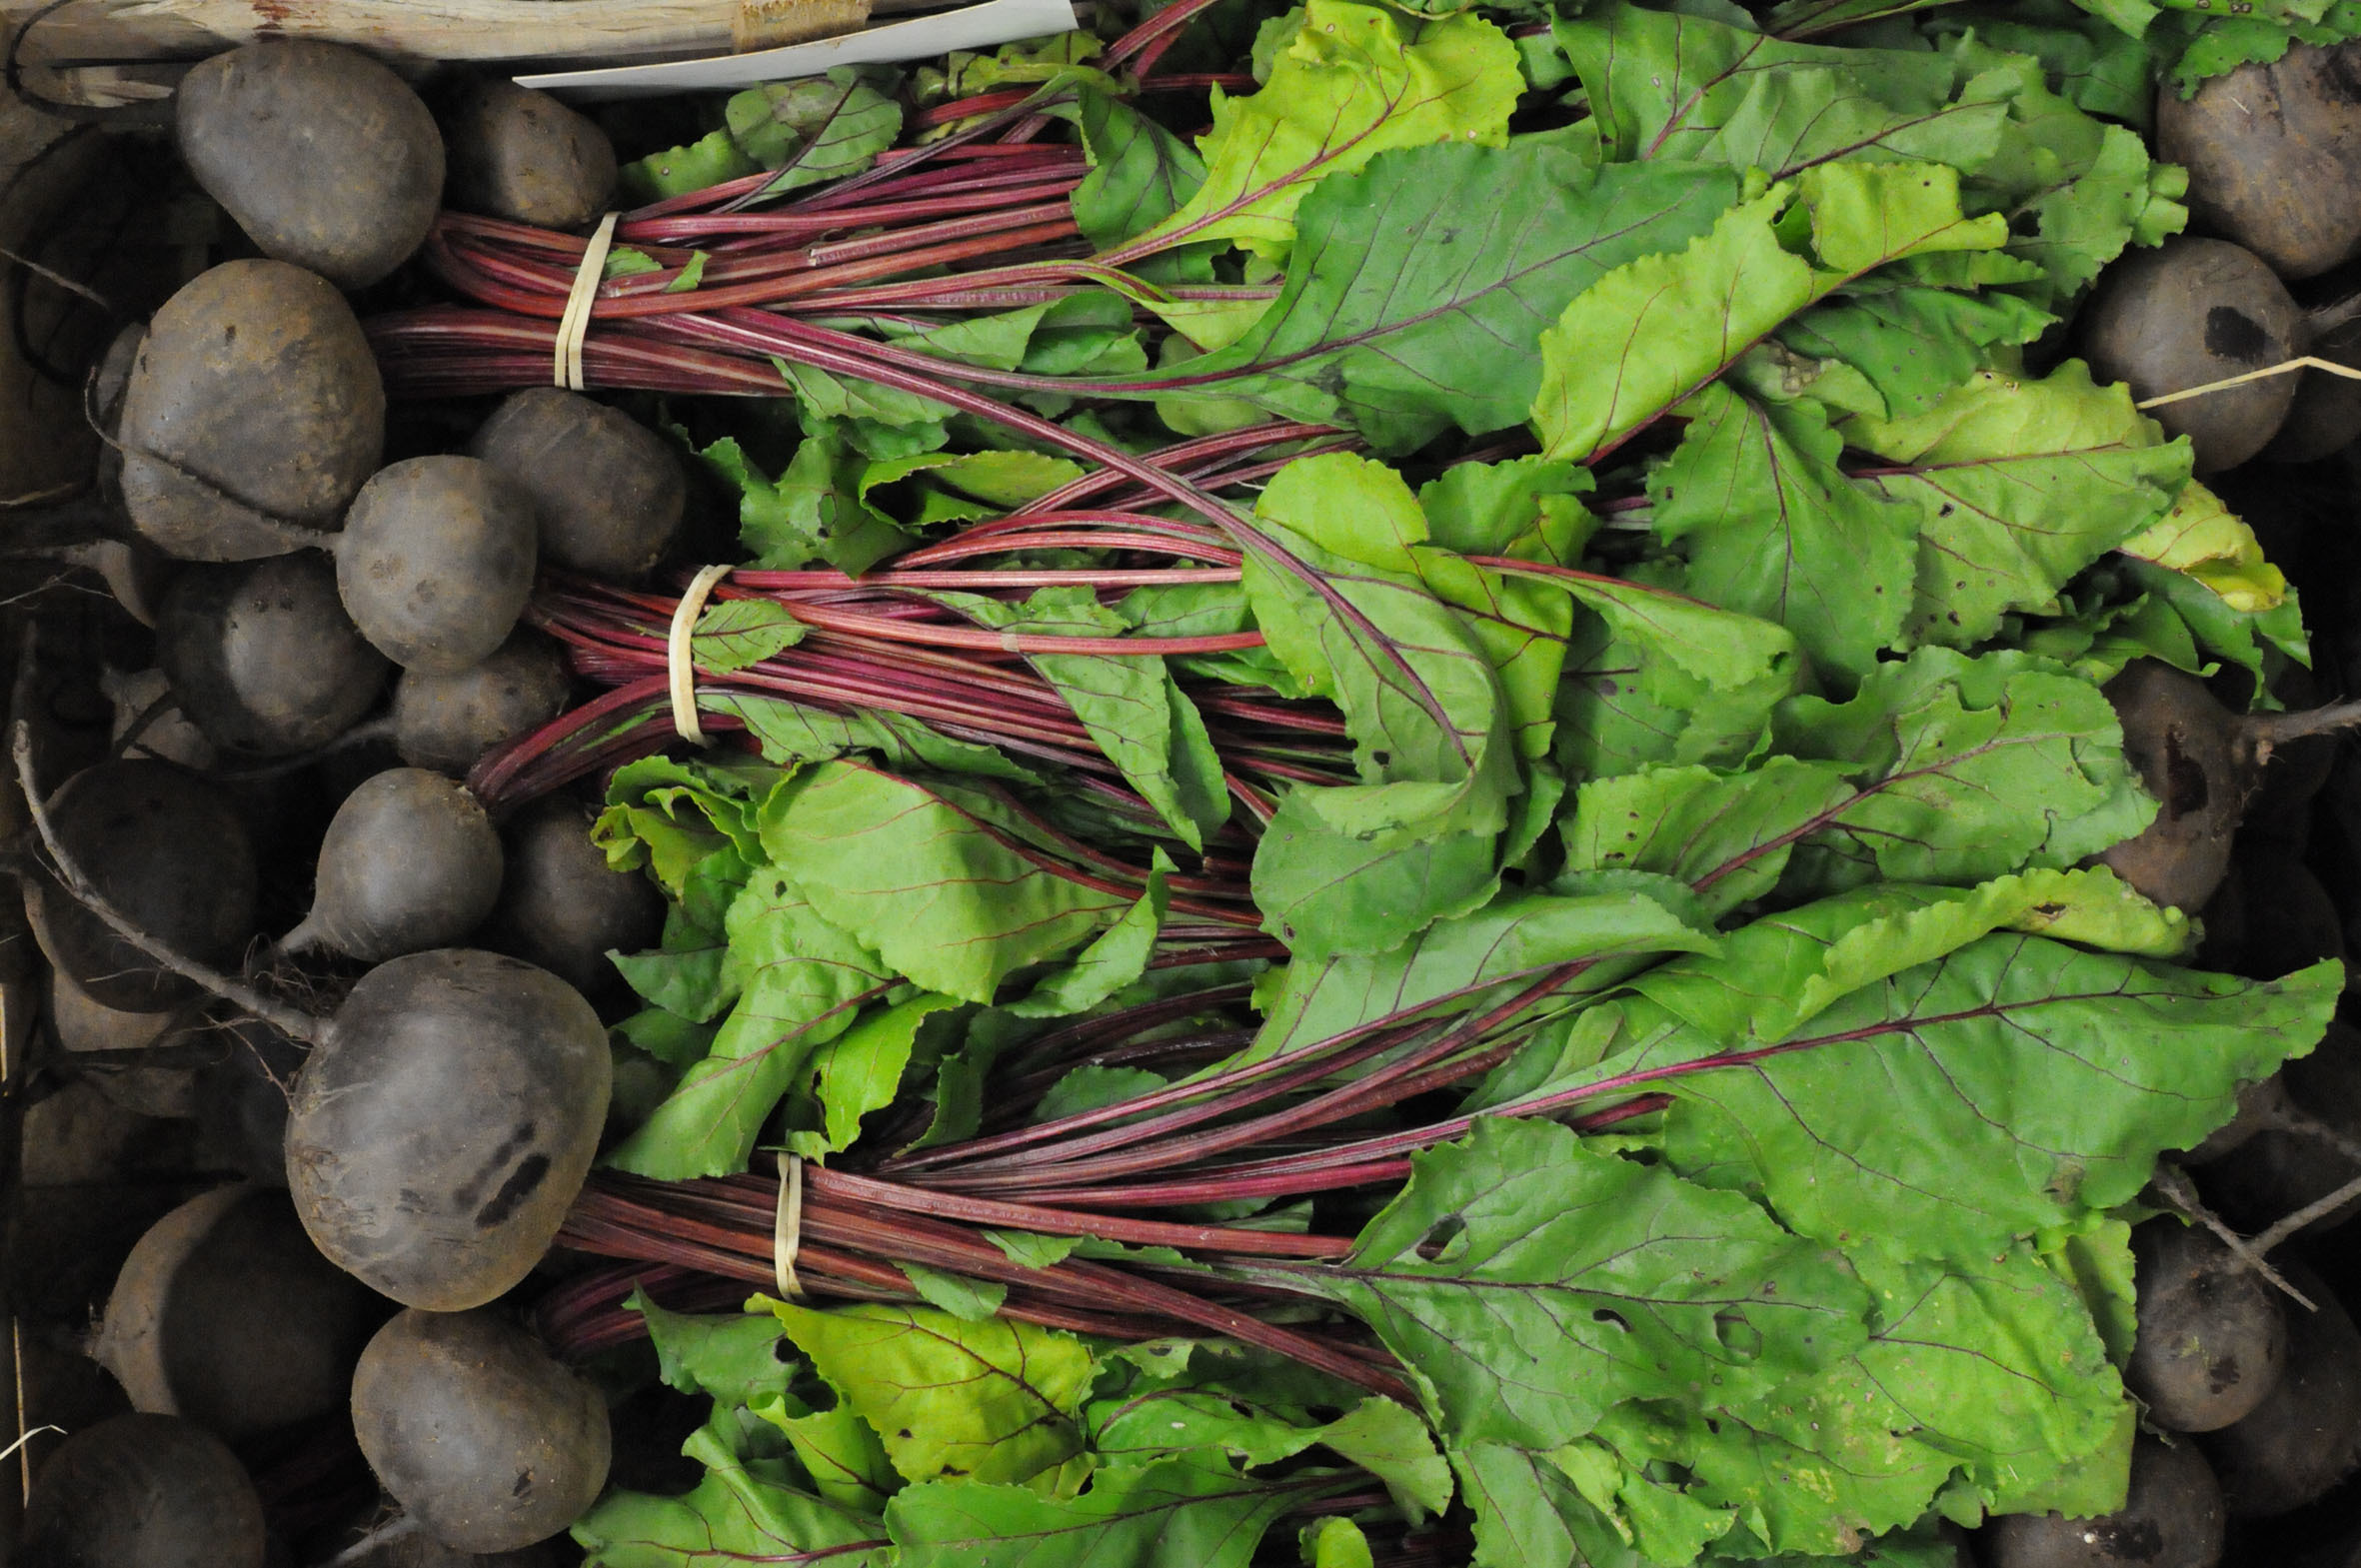 2013-09-01-Fruit-and-Veg-Market-Report-beetroot.jpg?mtime=20170922121304#asset:11427